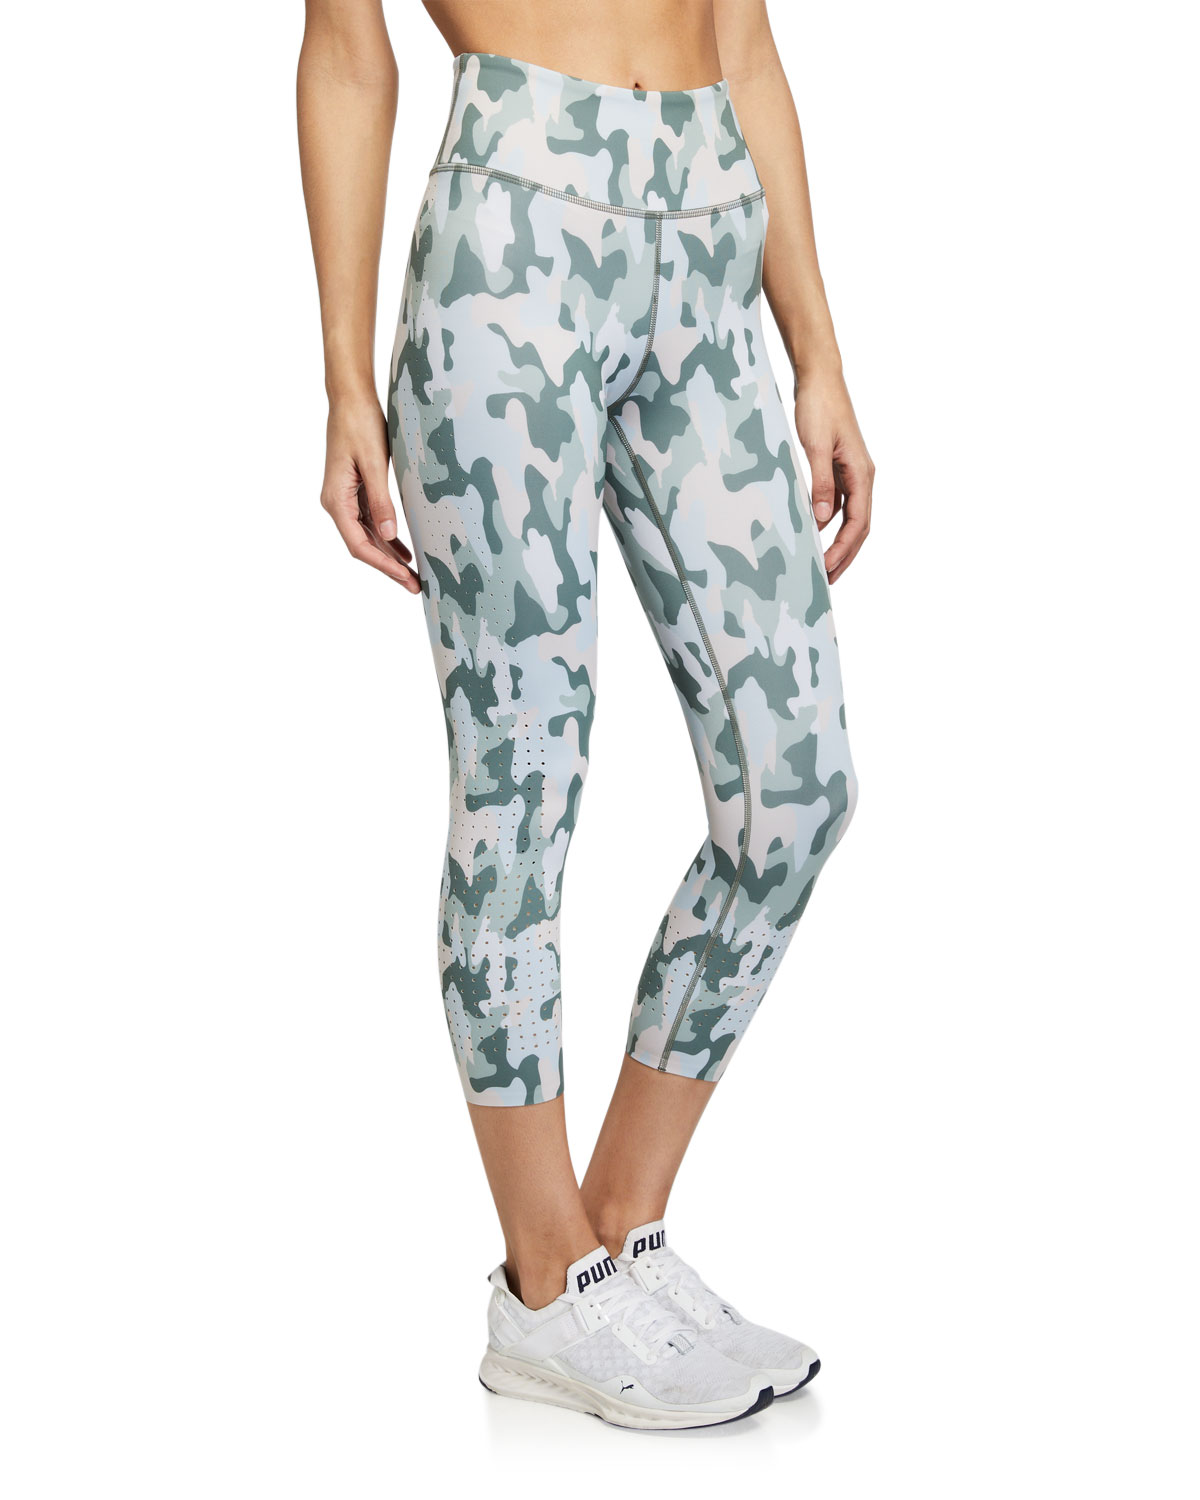 Aurum Freedom Camo Active Crop Leggings